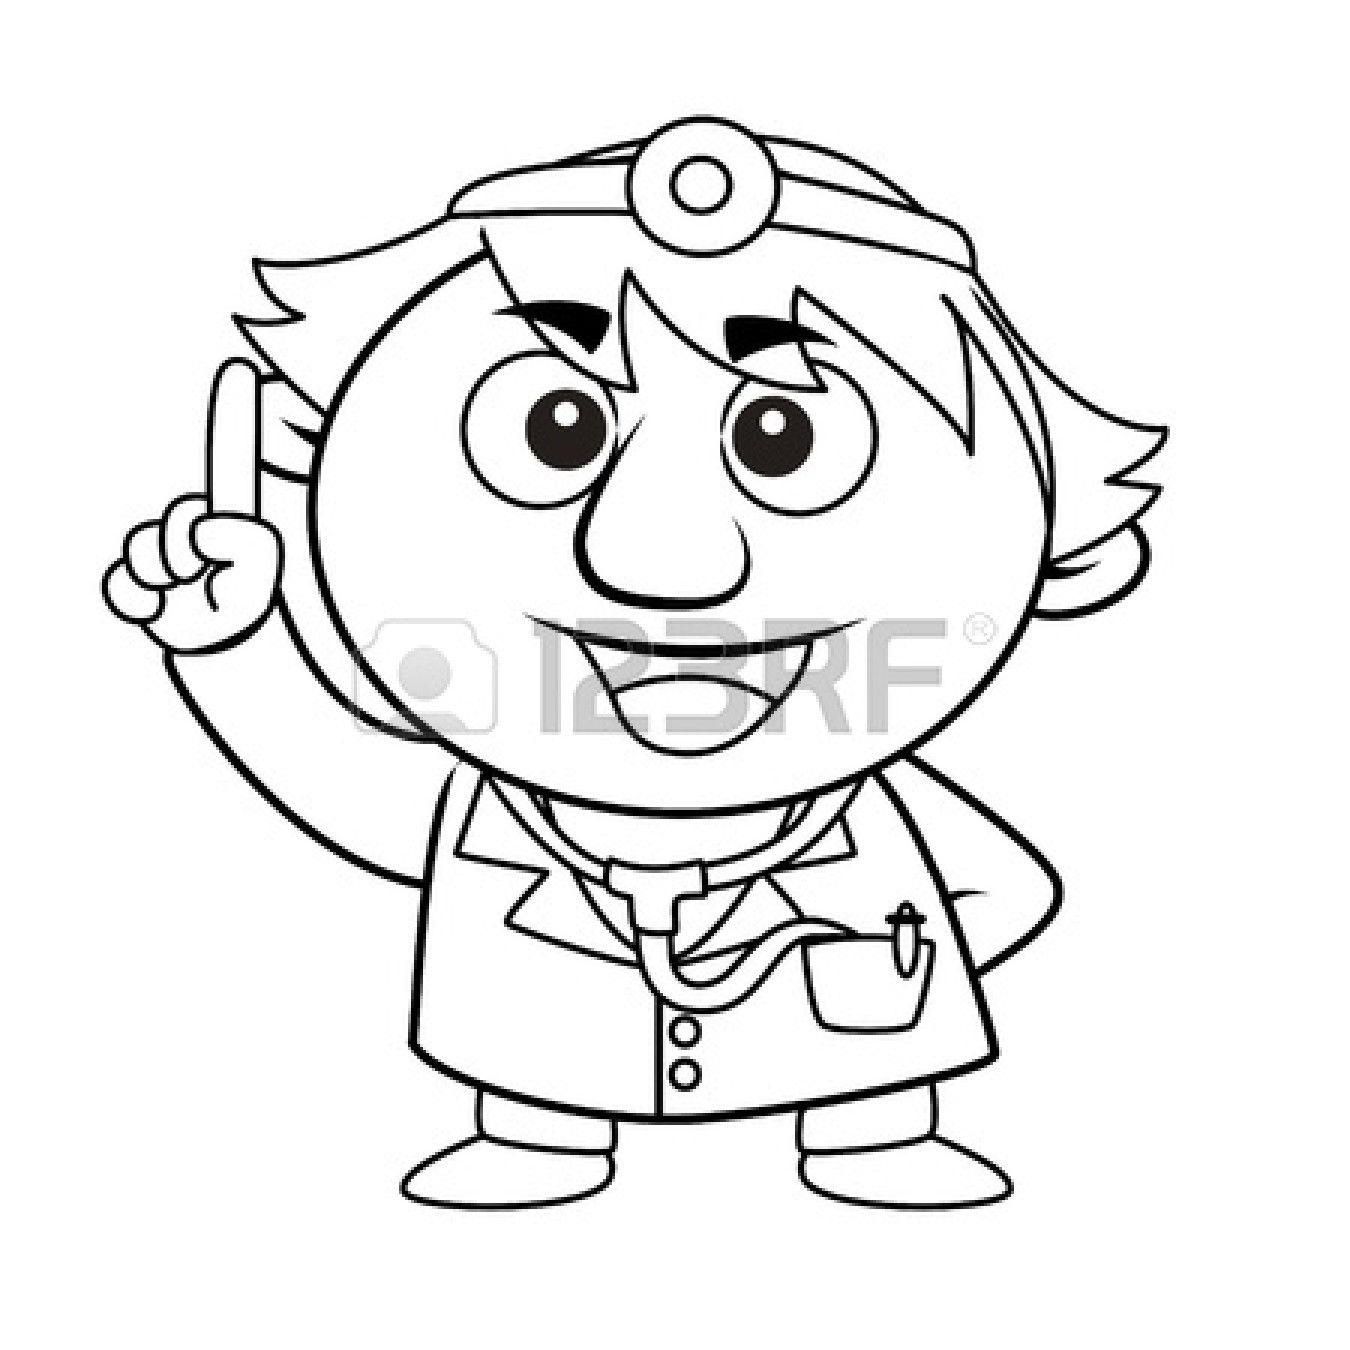 Coloring pages for doctors - Doctor 20tools 20clipart 20black 20and 20white